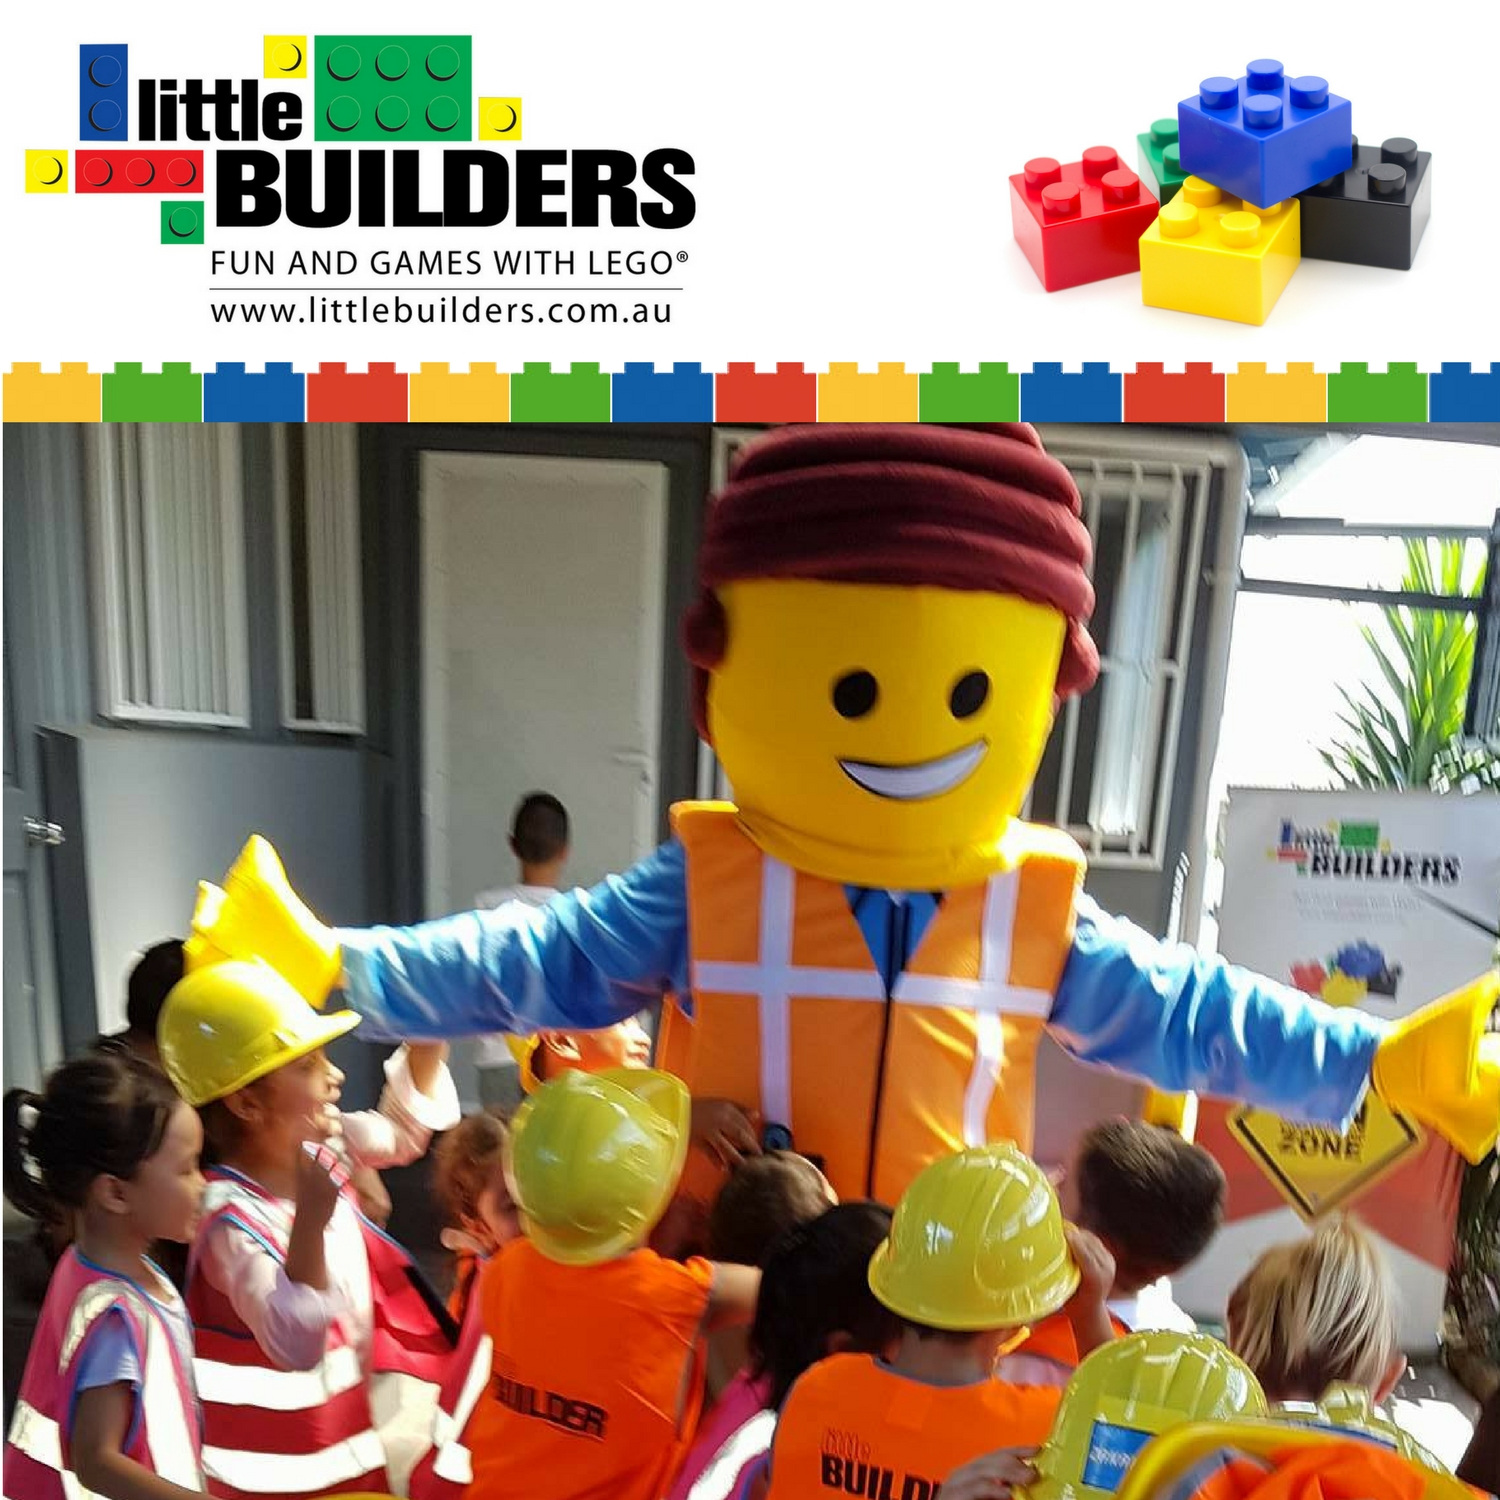 Little Builders Entertainment - Fun and games with LEGO®